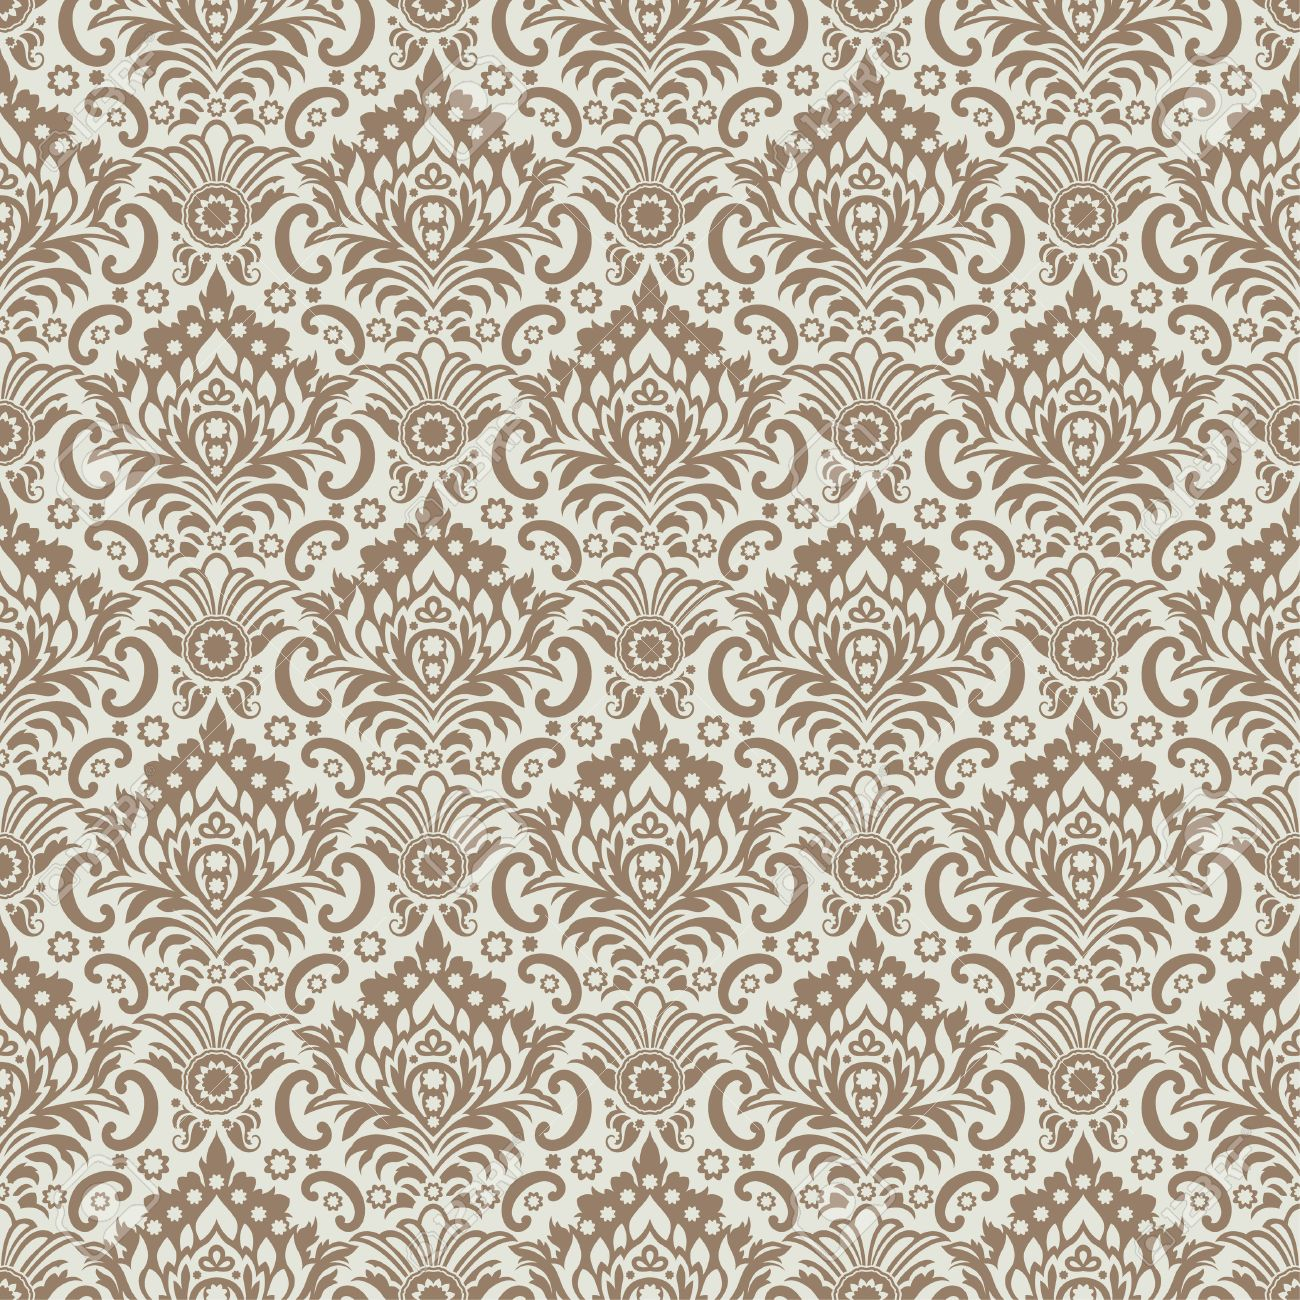 Seamless Classic Wallpaper Background Royalty Cliparts 1300x1300